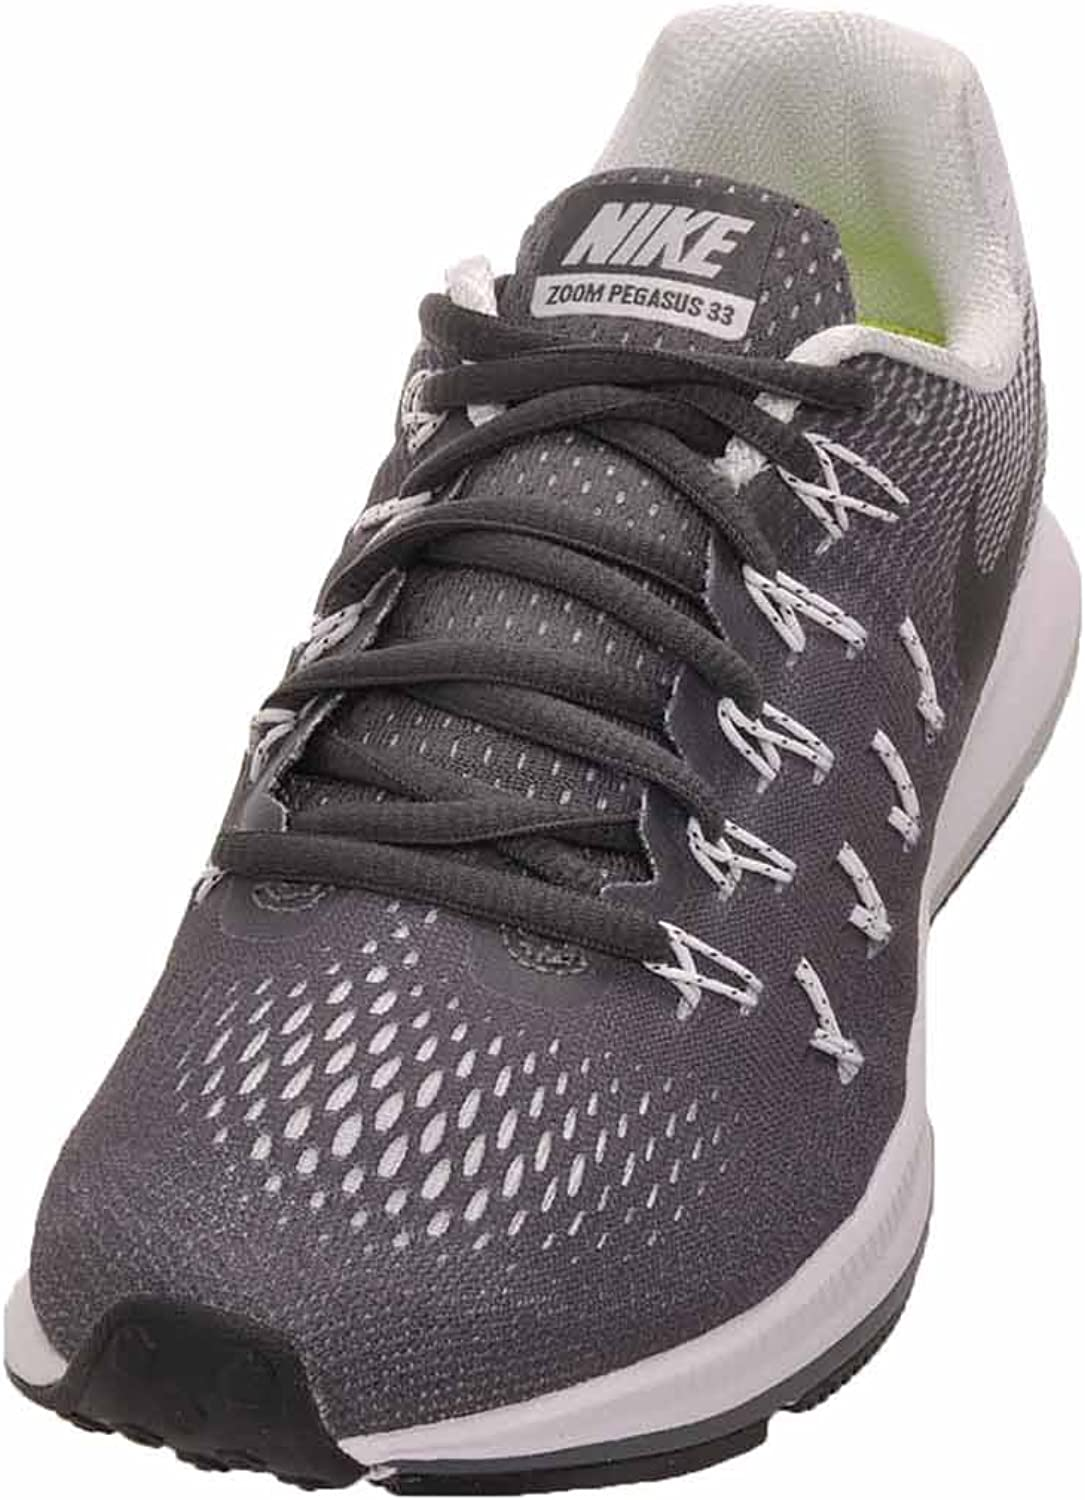 Nike Wmns Air Zoom Pegasus 33, Zapatillas de Running Unisex Adulto ...